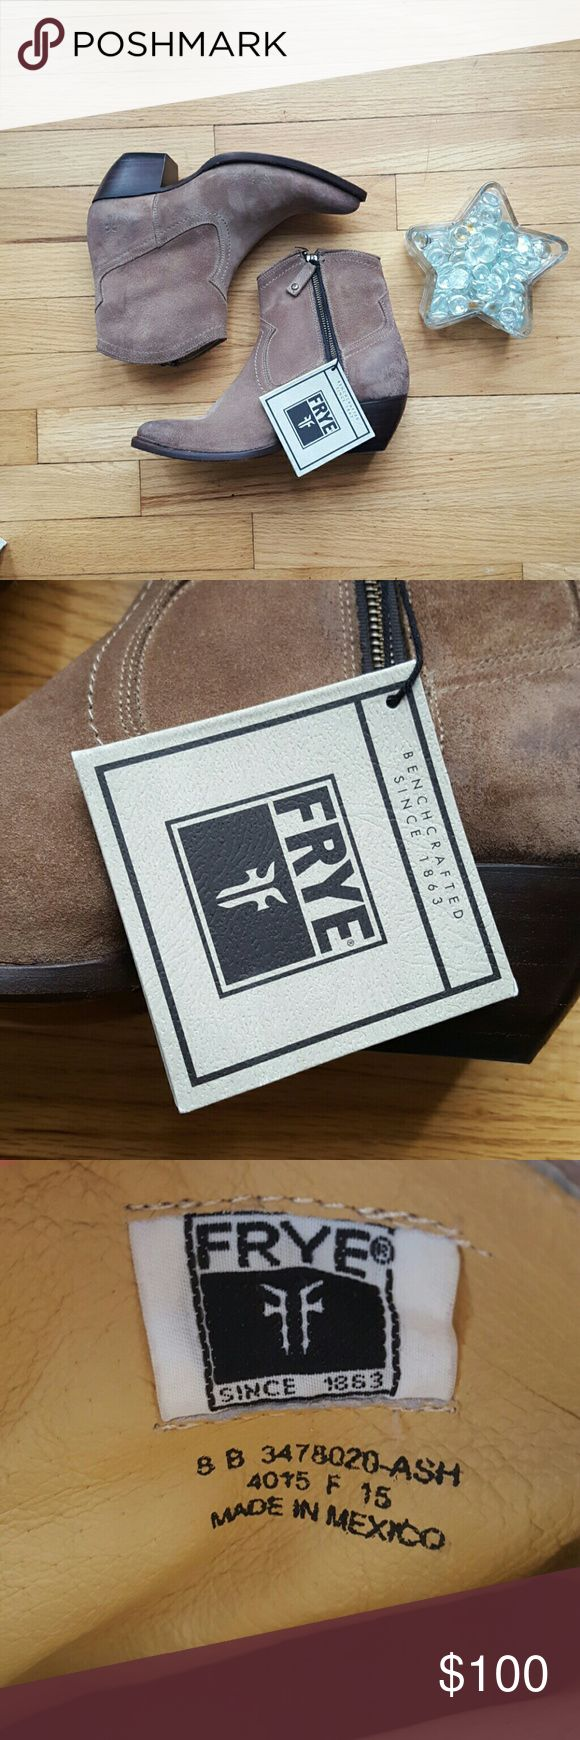 NEW Frye Sacha Short Ash Boot Size: 8 NWOB. Never worn! Size: 8 Frye Shoes Ankle Boots & Booties